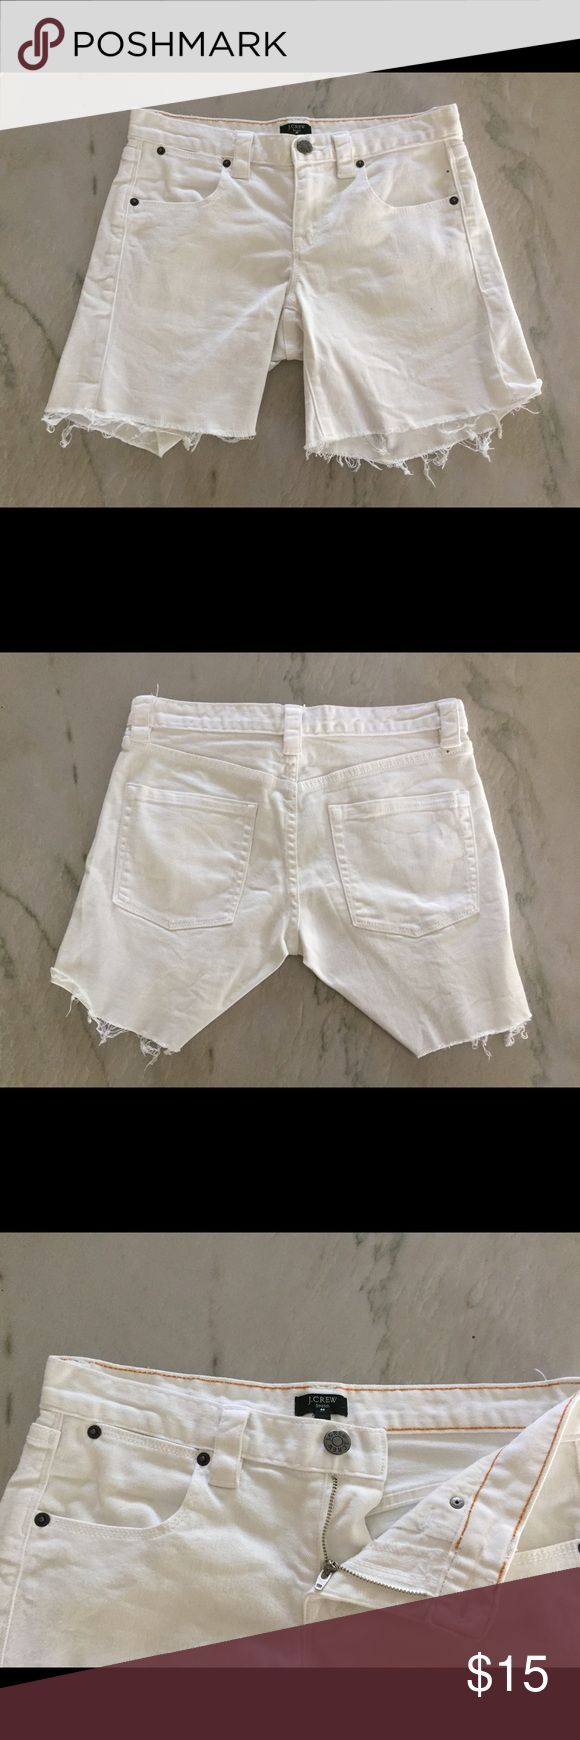 """J Crew Women's Stretch White Jean Shorts Very gently worn J Crew White Denim Cut Off Shorts. This is a 5 pocket Short that has plenty of stretch. They are made of cotton and spandex. I see zero spots or stains. Length 15"""" Inseam 6"""". This is not a """"short short"""" J. Crew Shorts"""